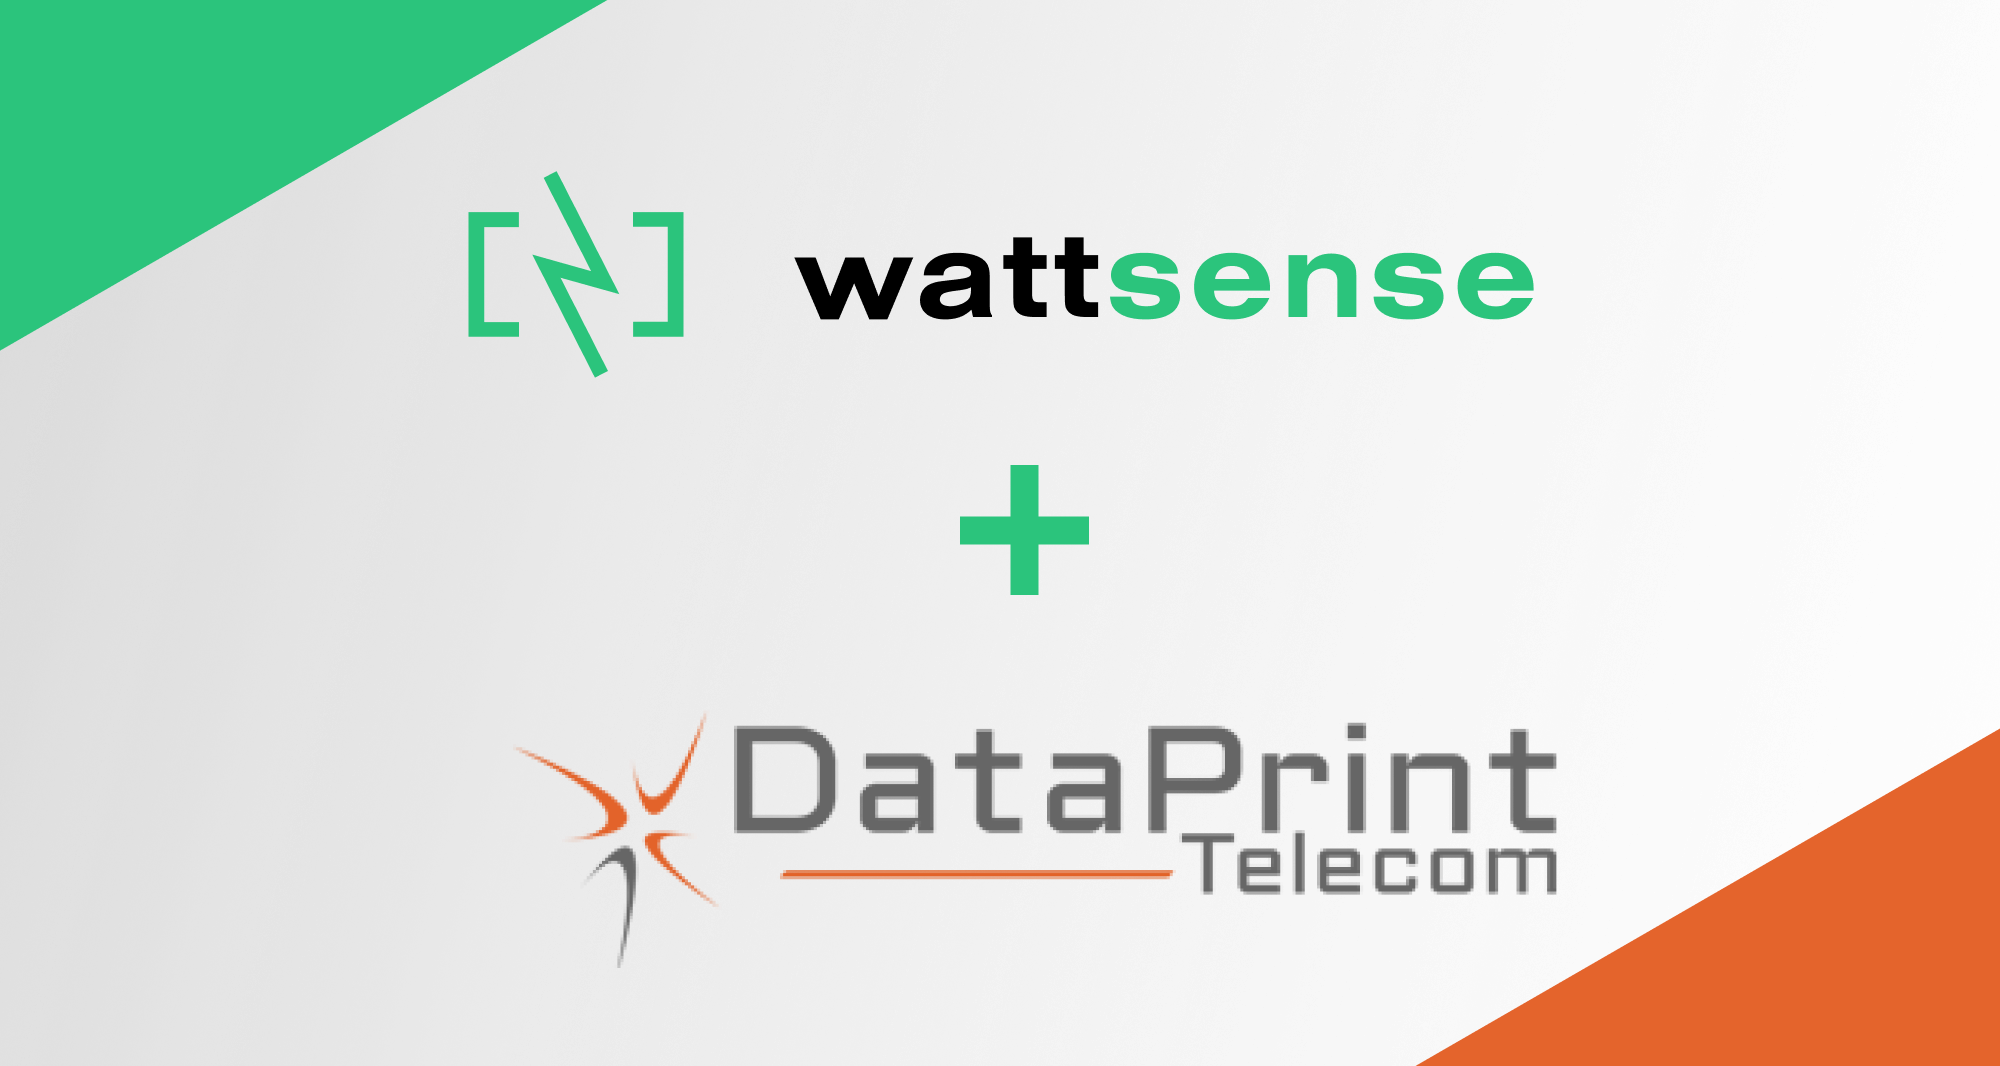 DataPrint renforce avec Wattsense son offre de solutions pour les applications Smart Building